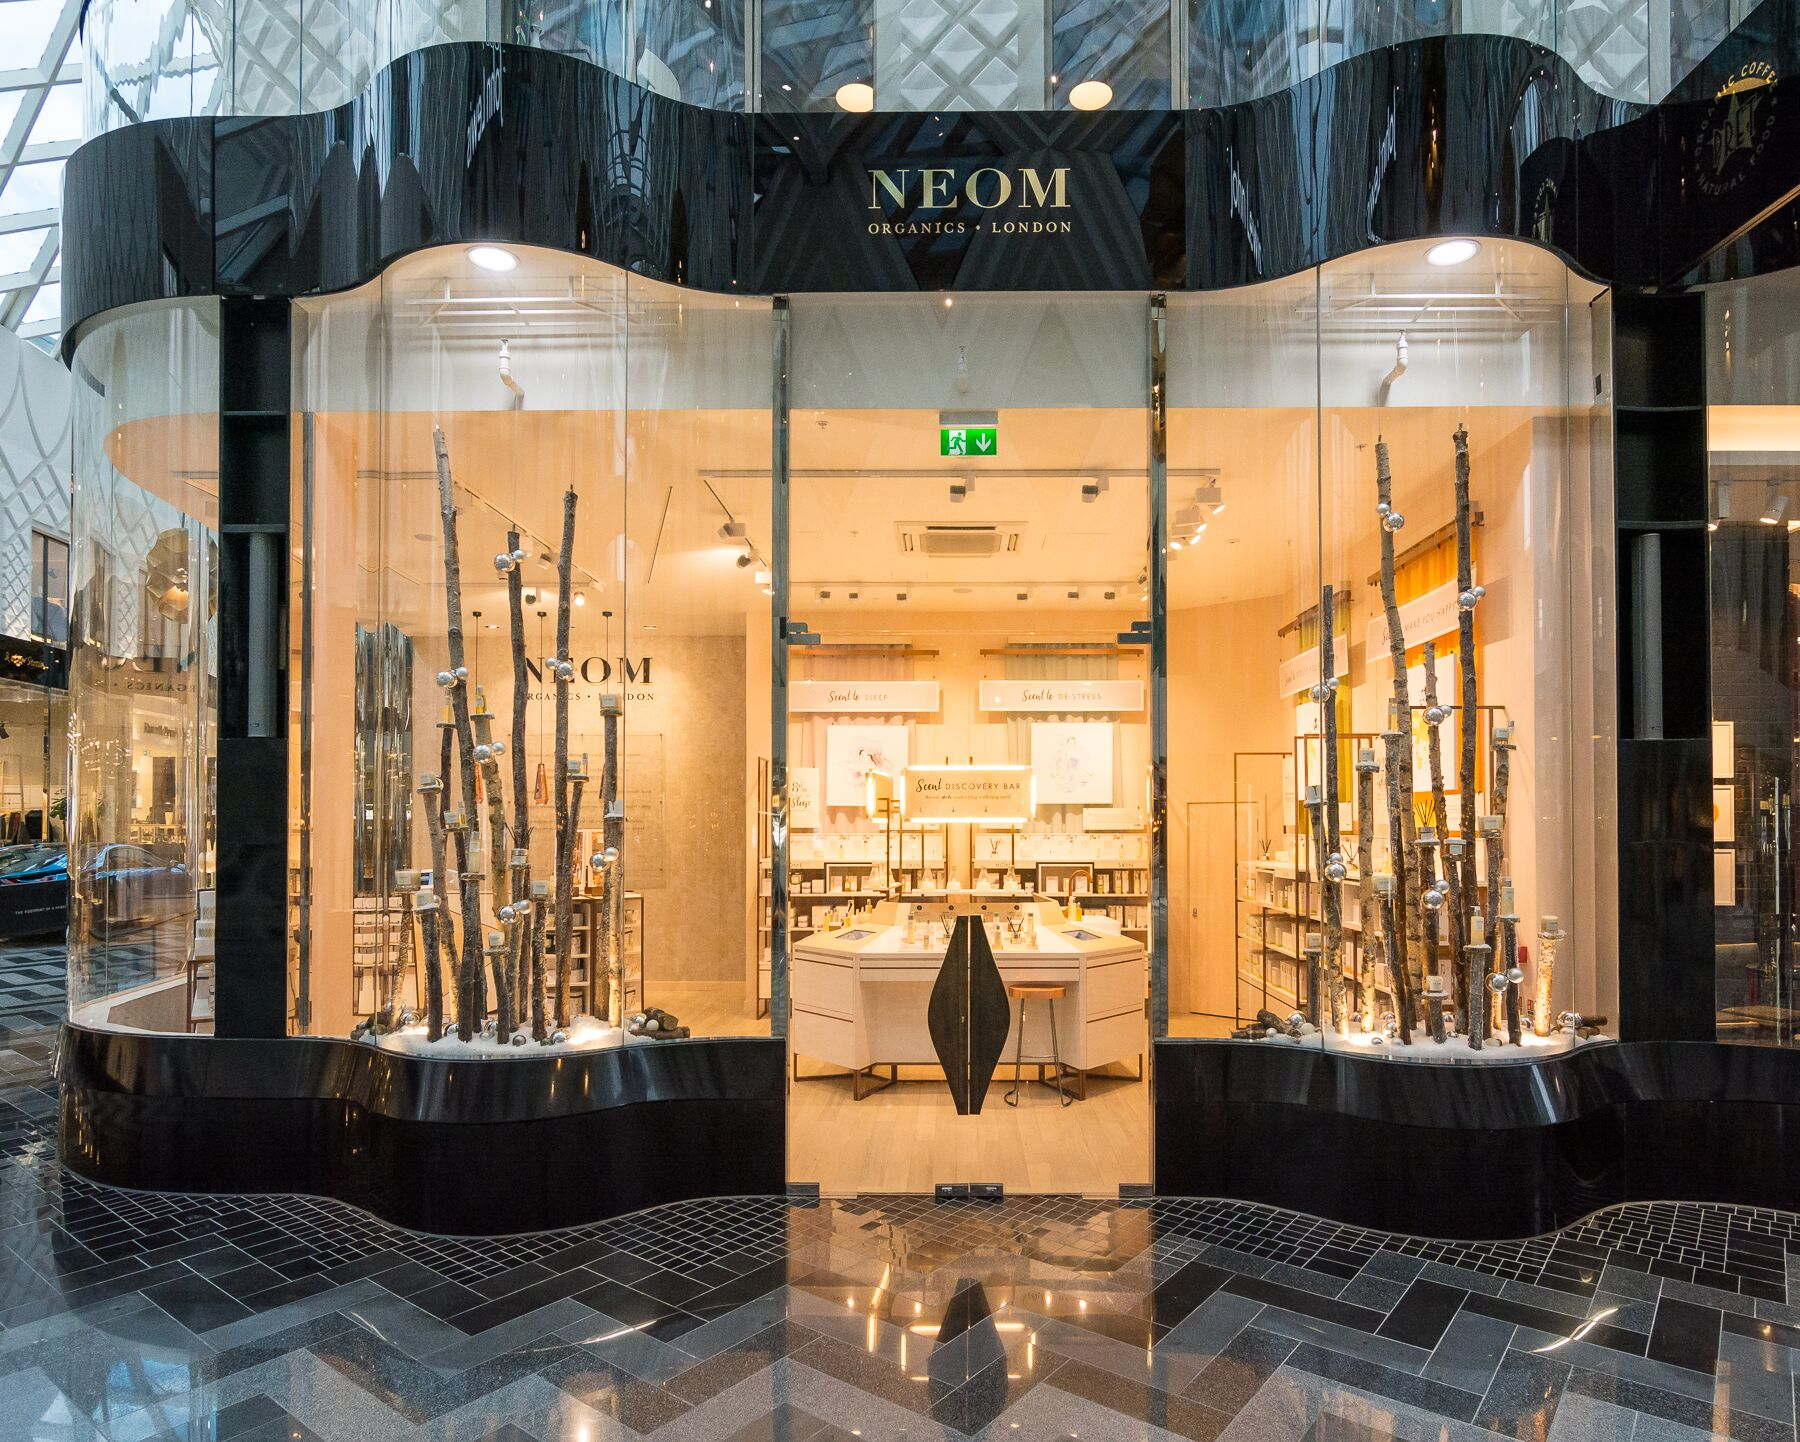 The NEOM store in Victoria Leeds